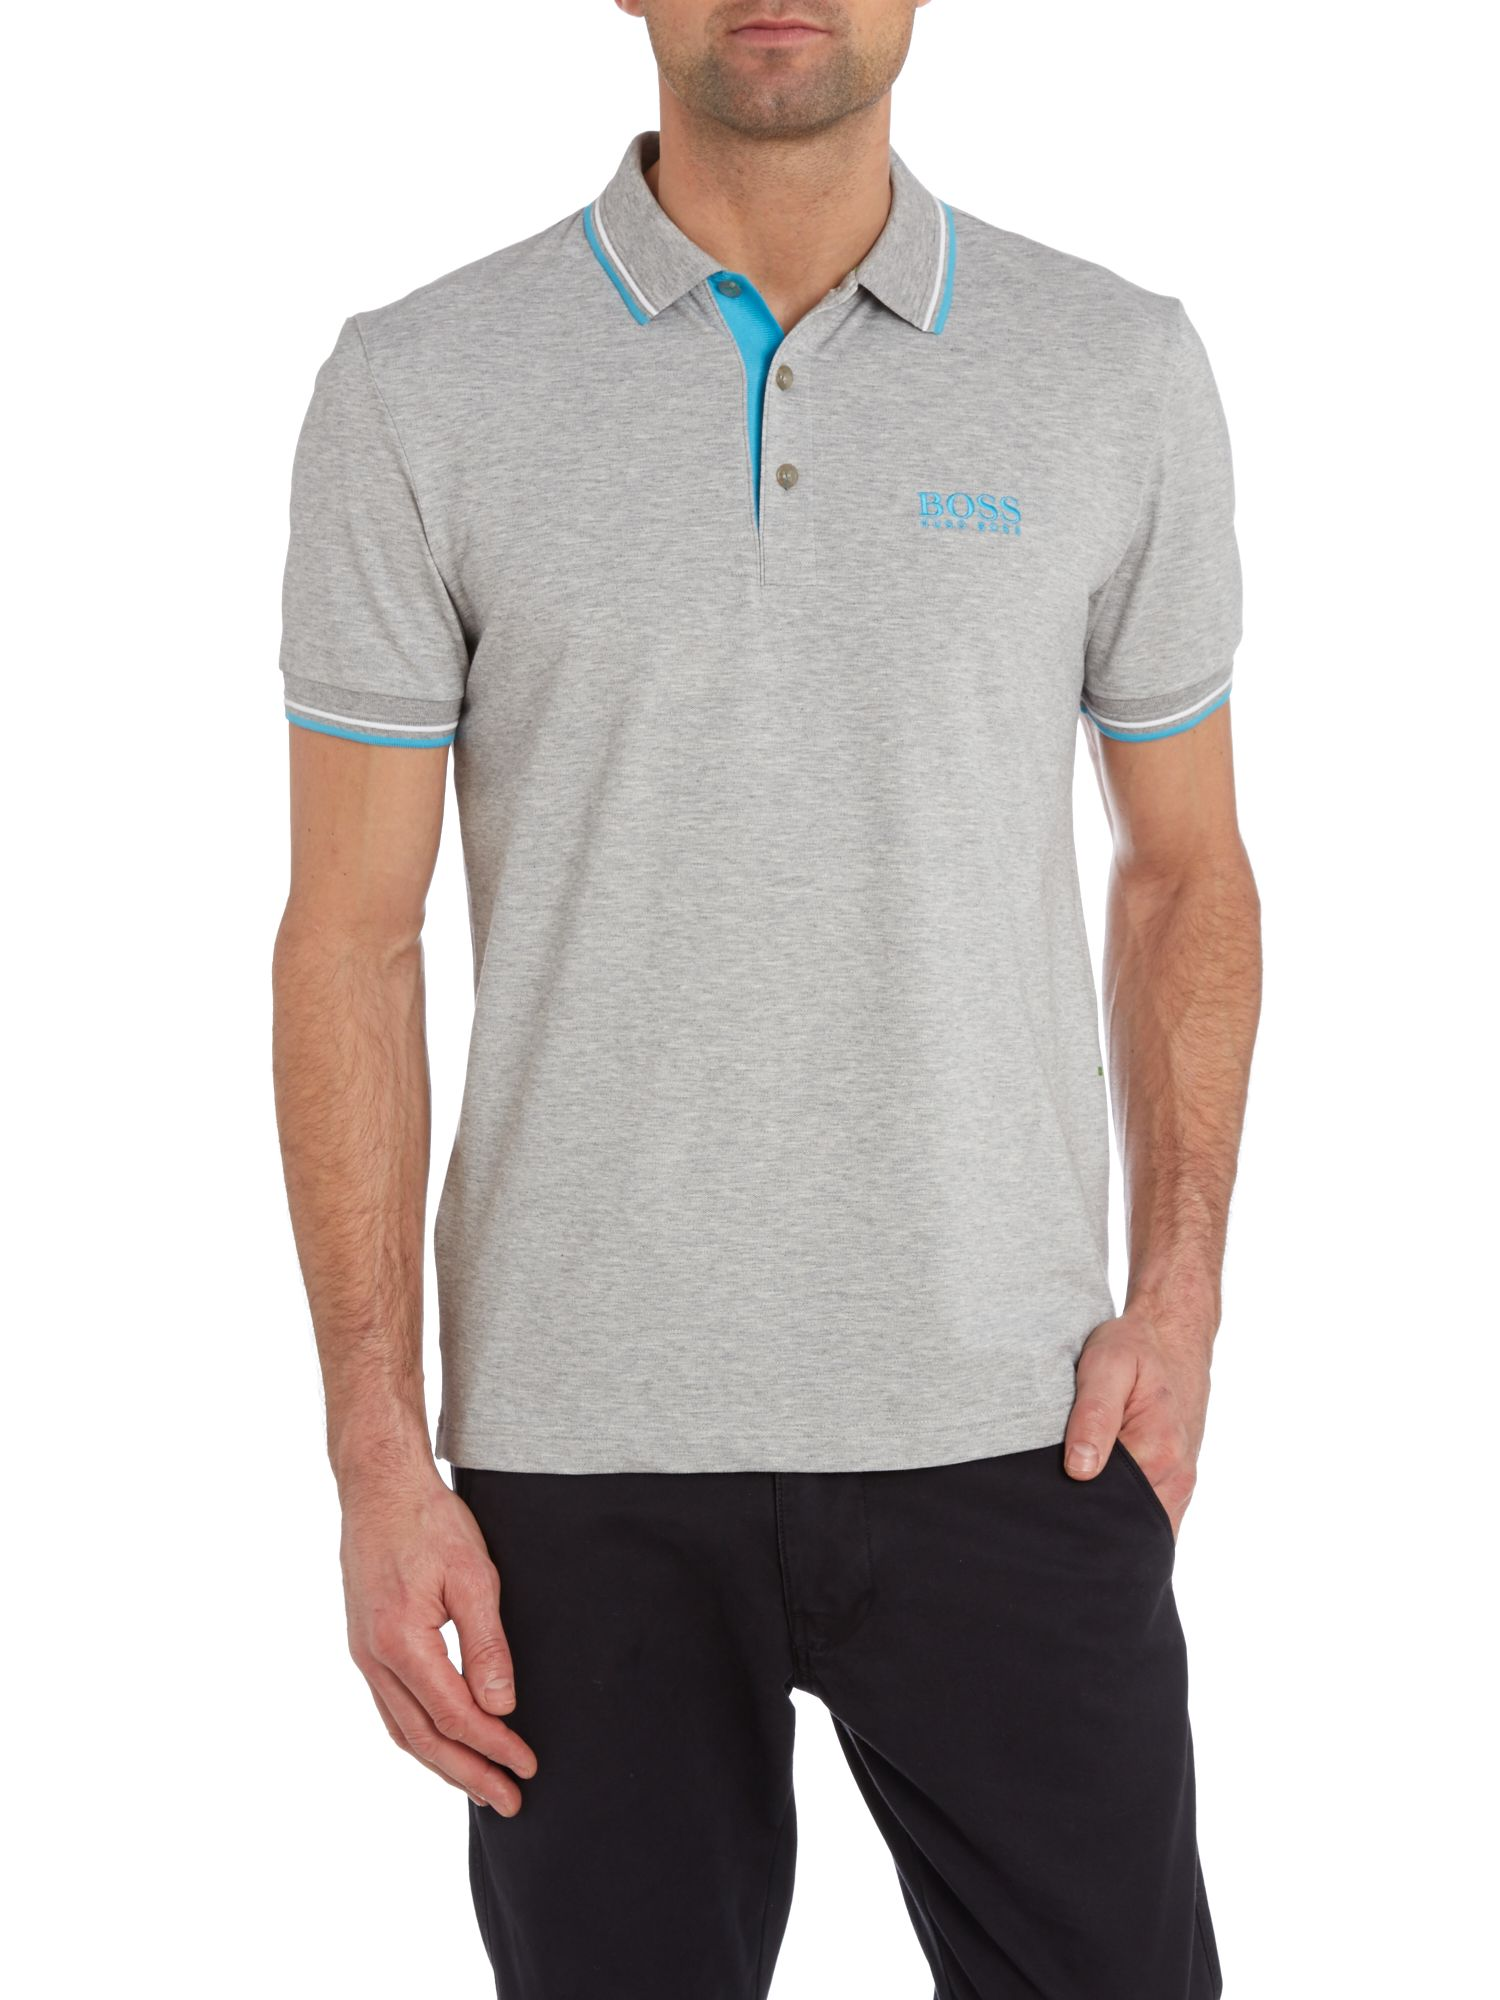 Golf logo polo shirt